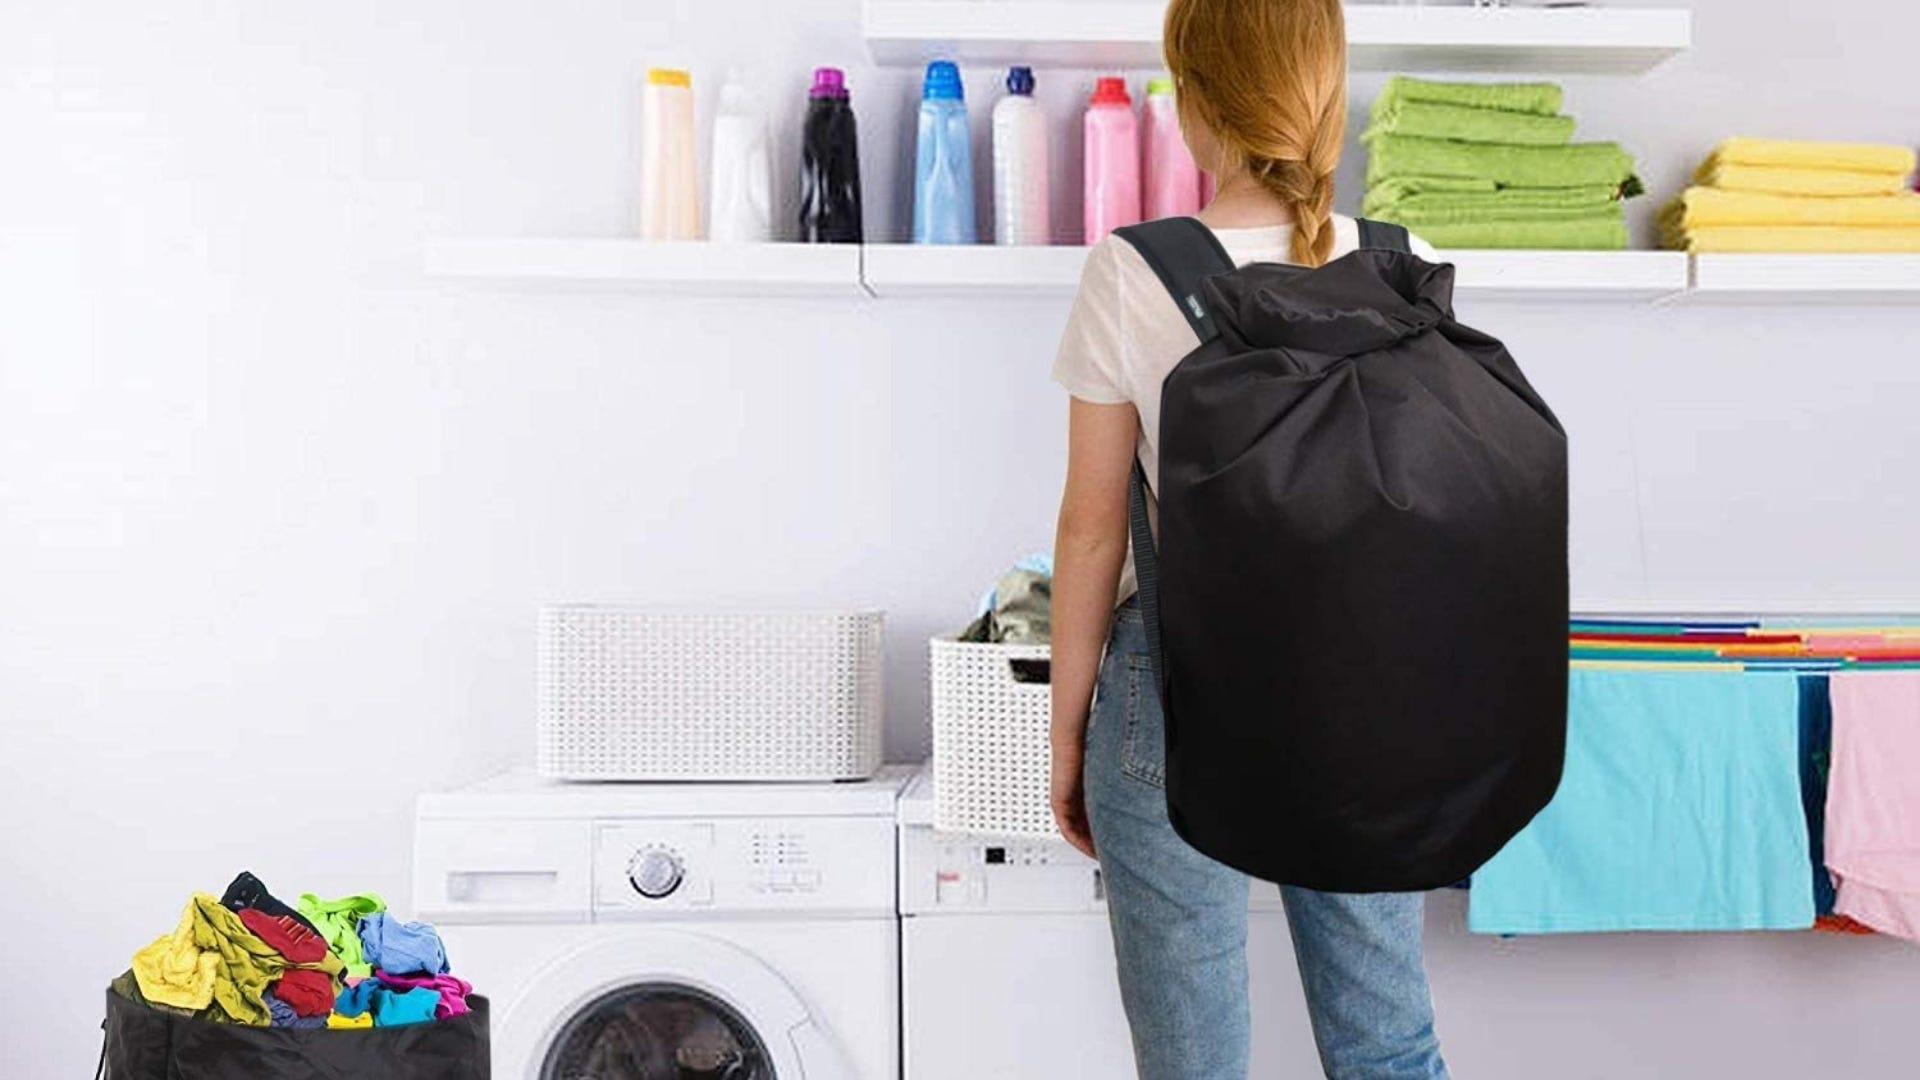 A woman sorting clothes on a dryer while wearing the laundry backpack.